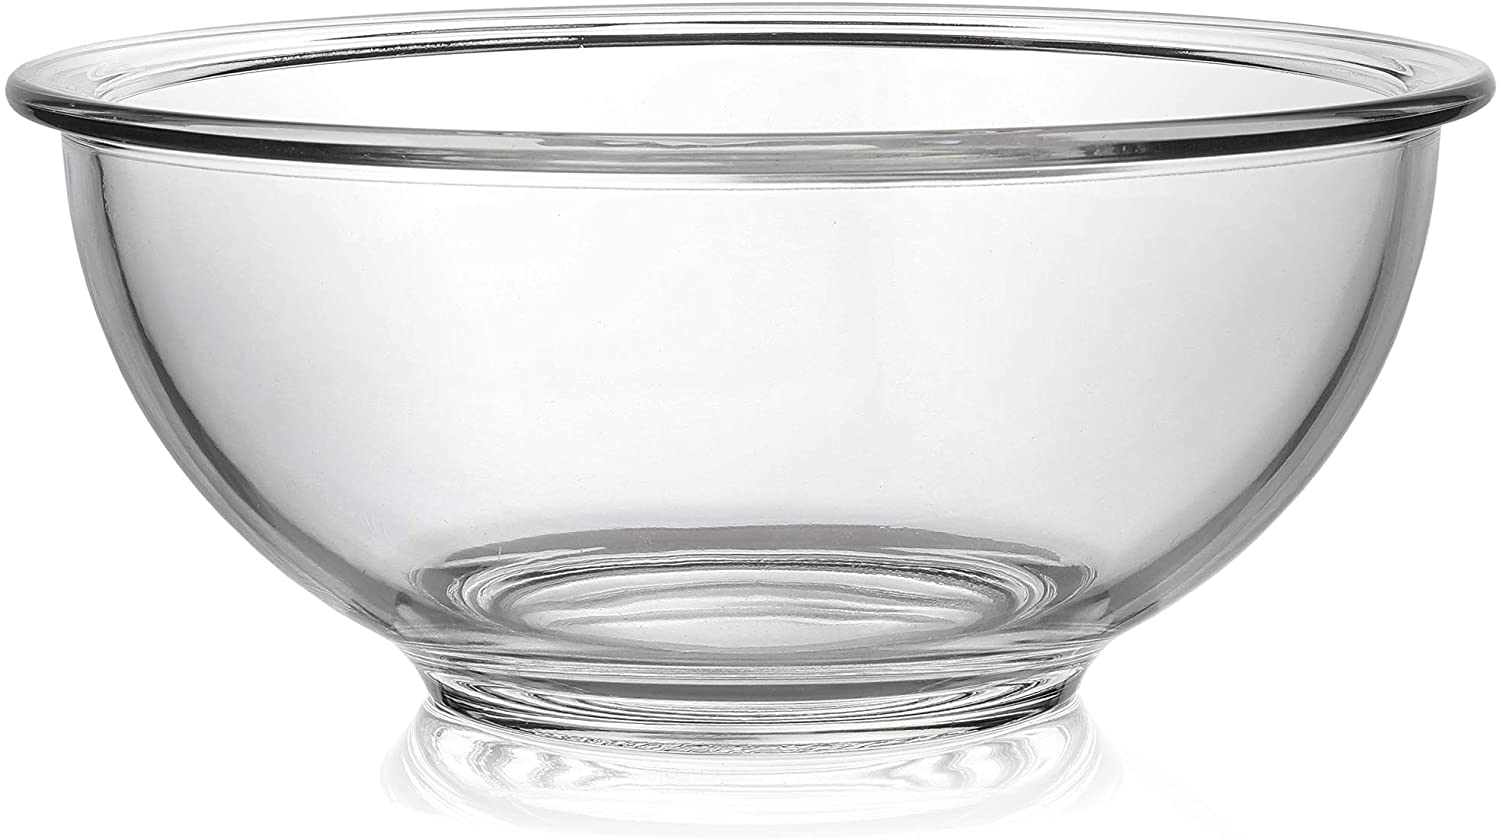 Bovado Glass Bowl for Storage, Mixing, Serving - Clear, Dishwasher, Freezer & Oven Safe Glass, Easy-Clean, 1.5 QT